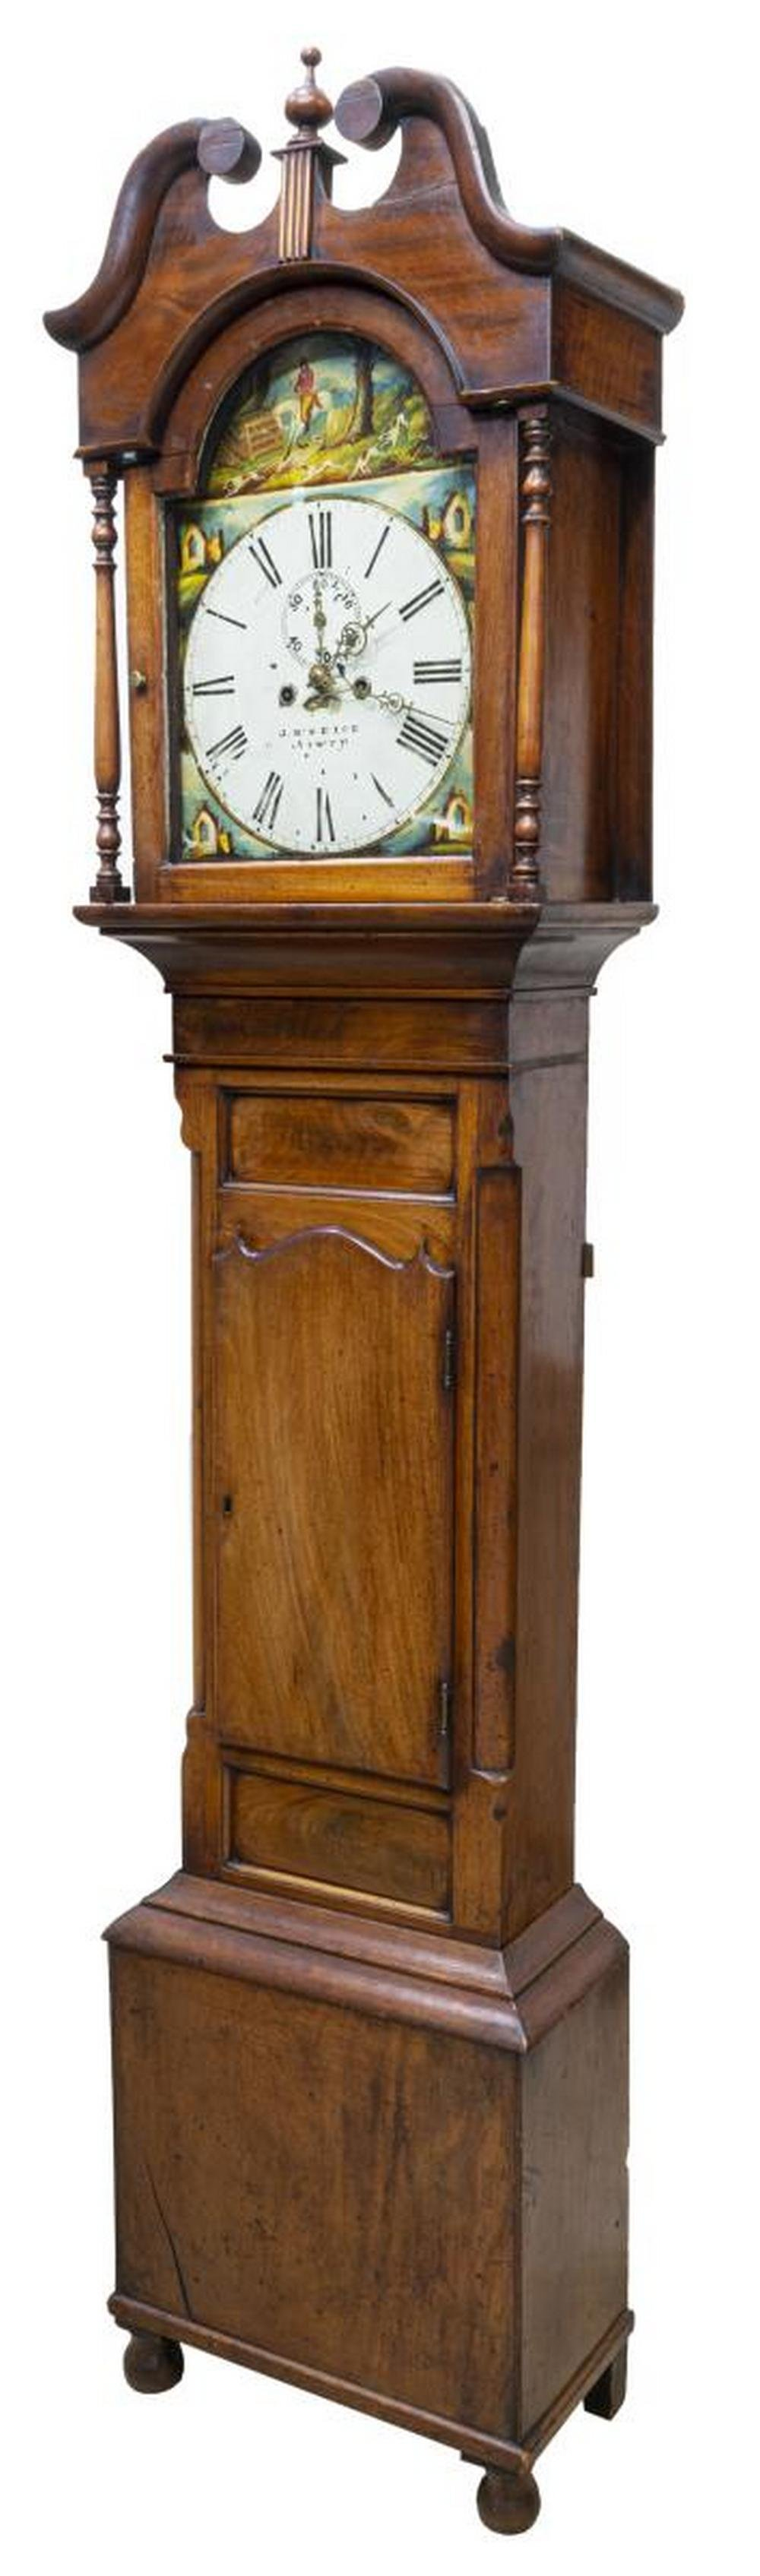 BRITISH MAHOGANY TALL CASE CLOCK, J. McNEICE